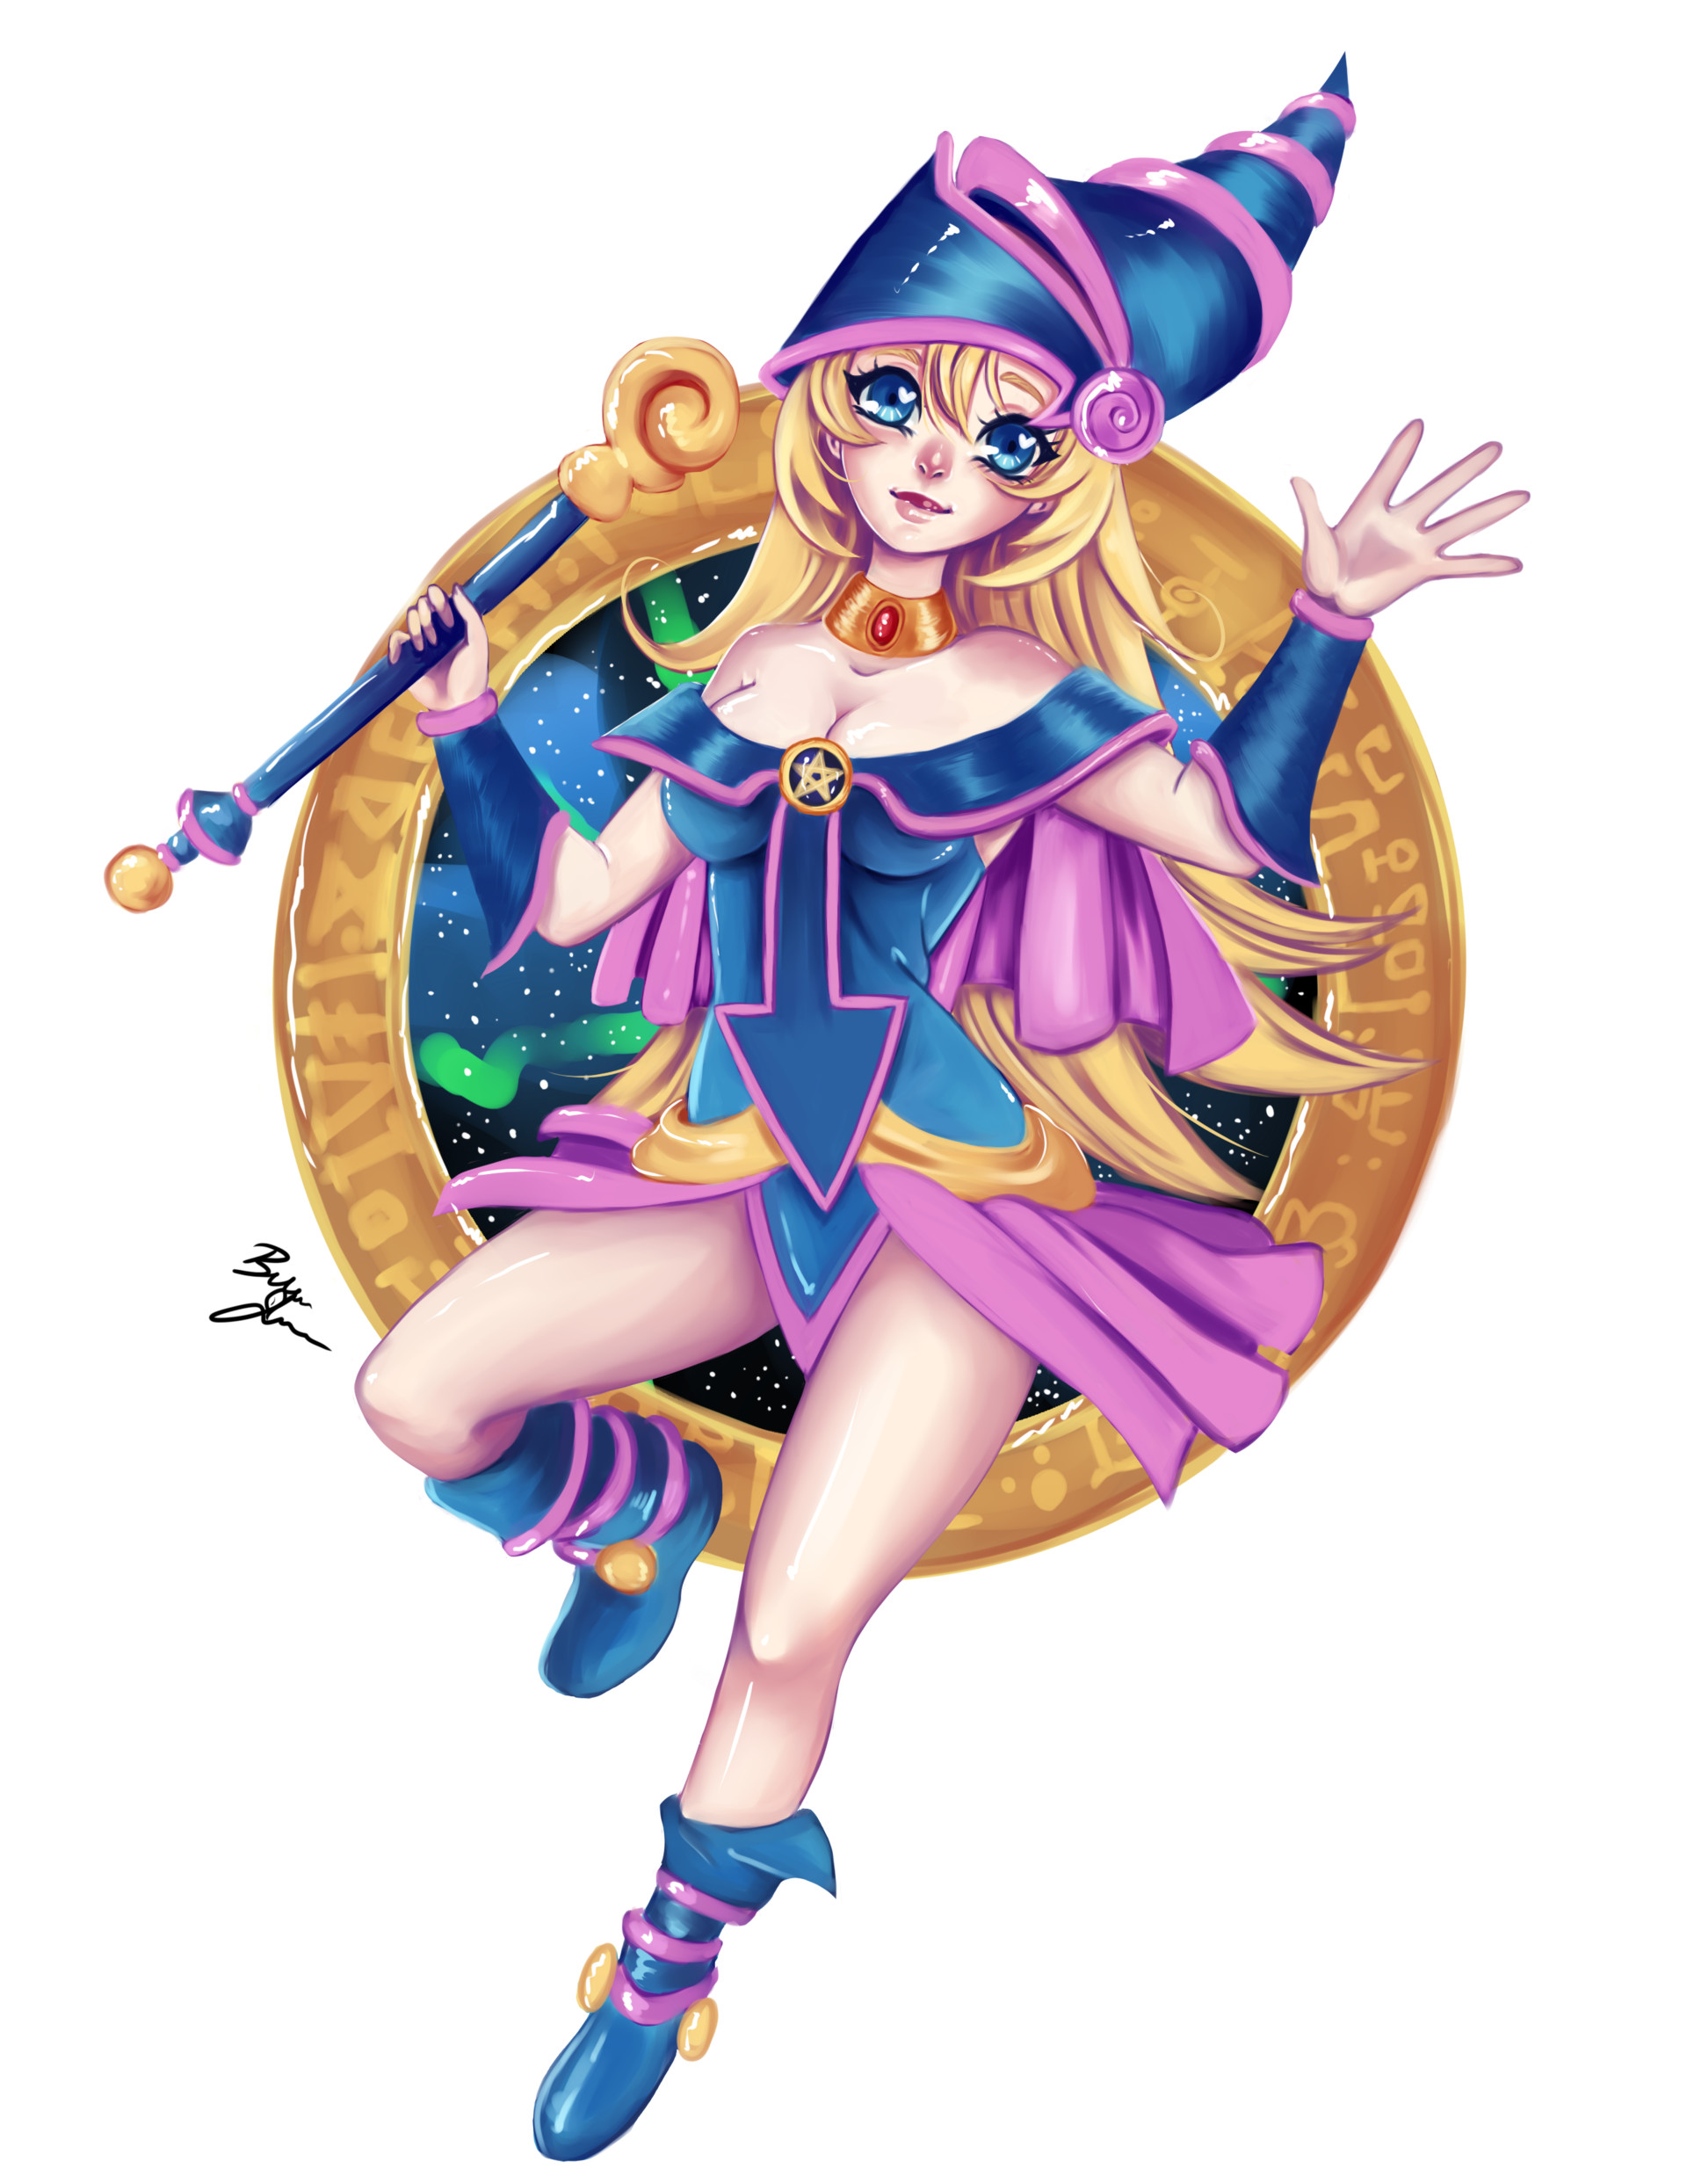 Dark magician girl from yu gi oh  hentai pictures